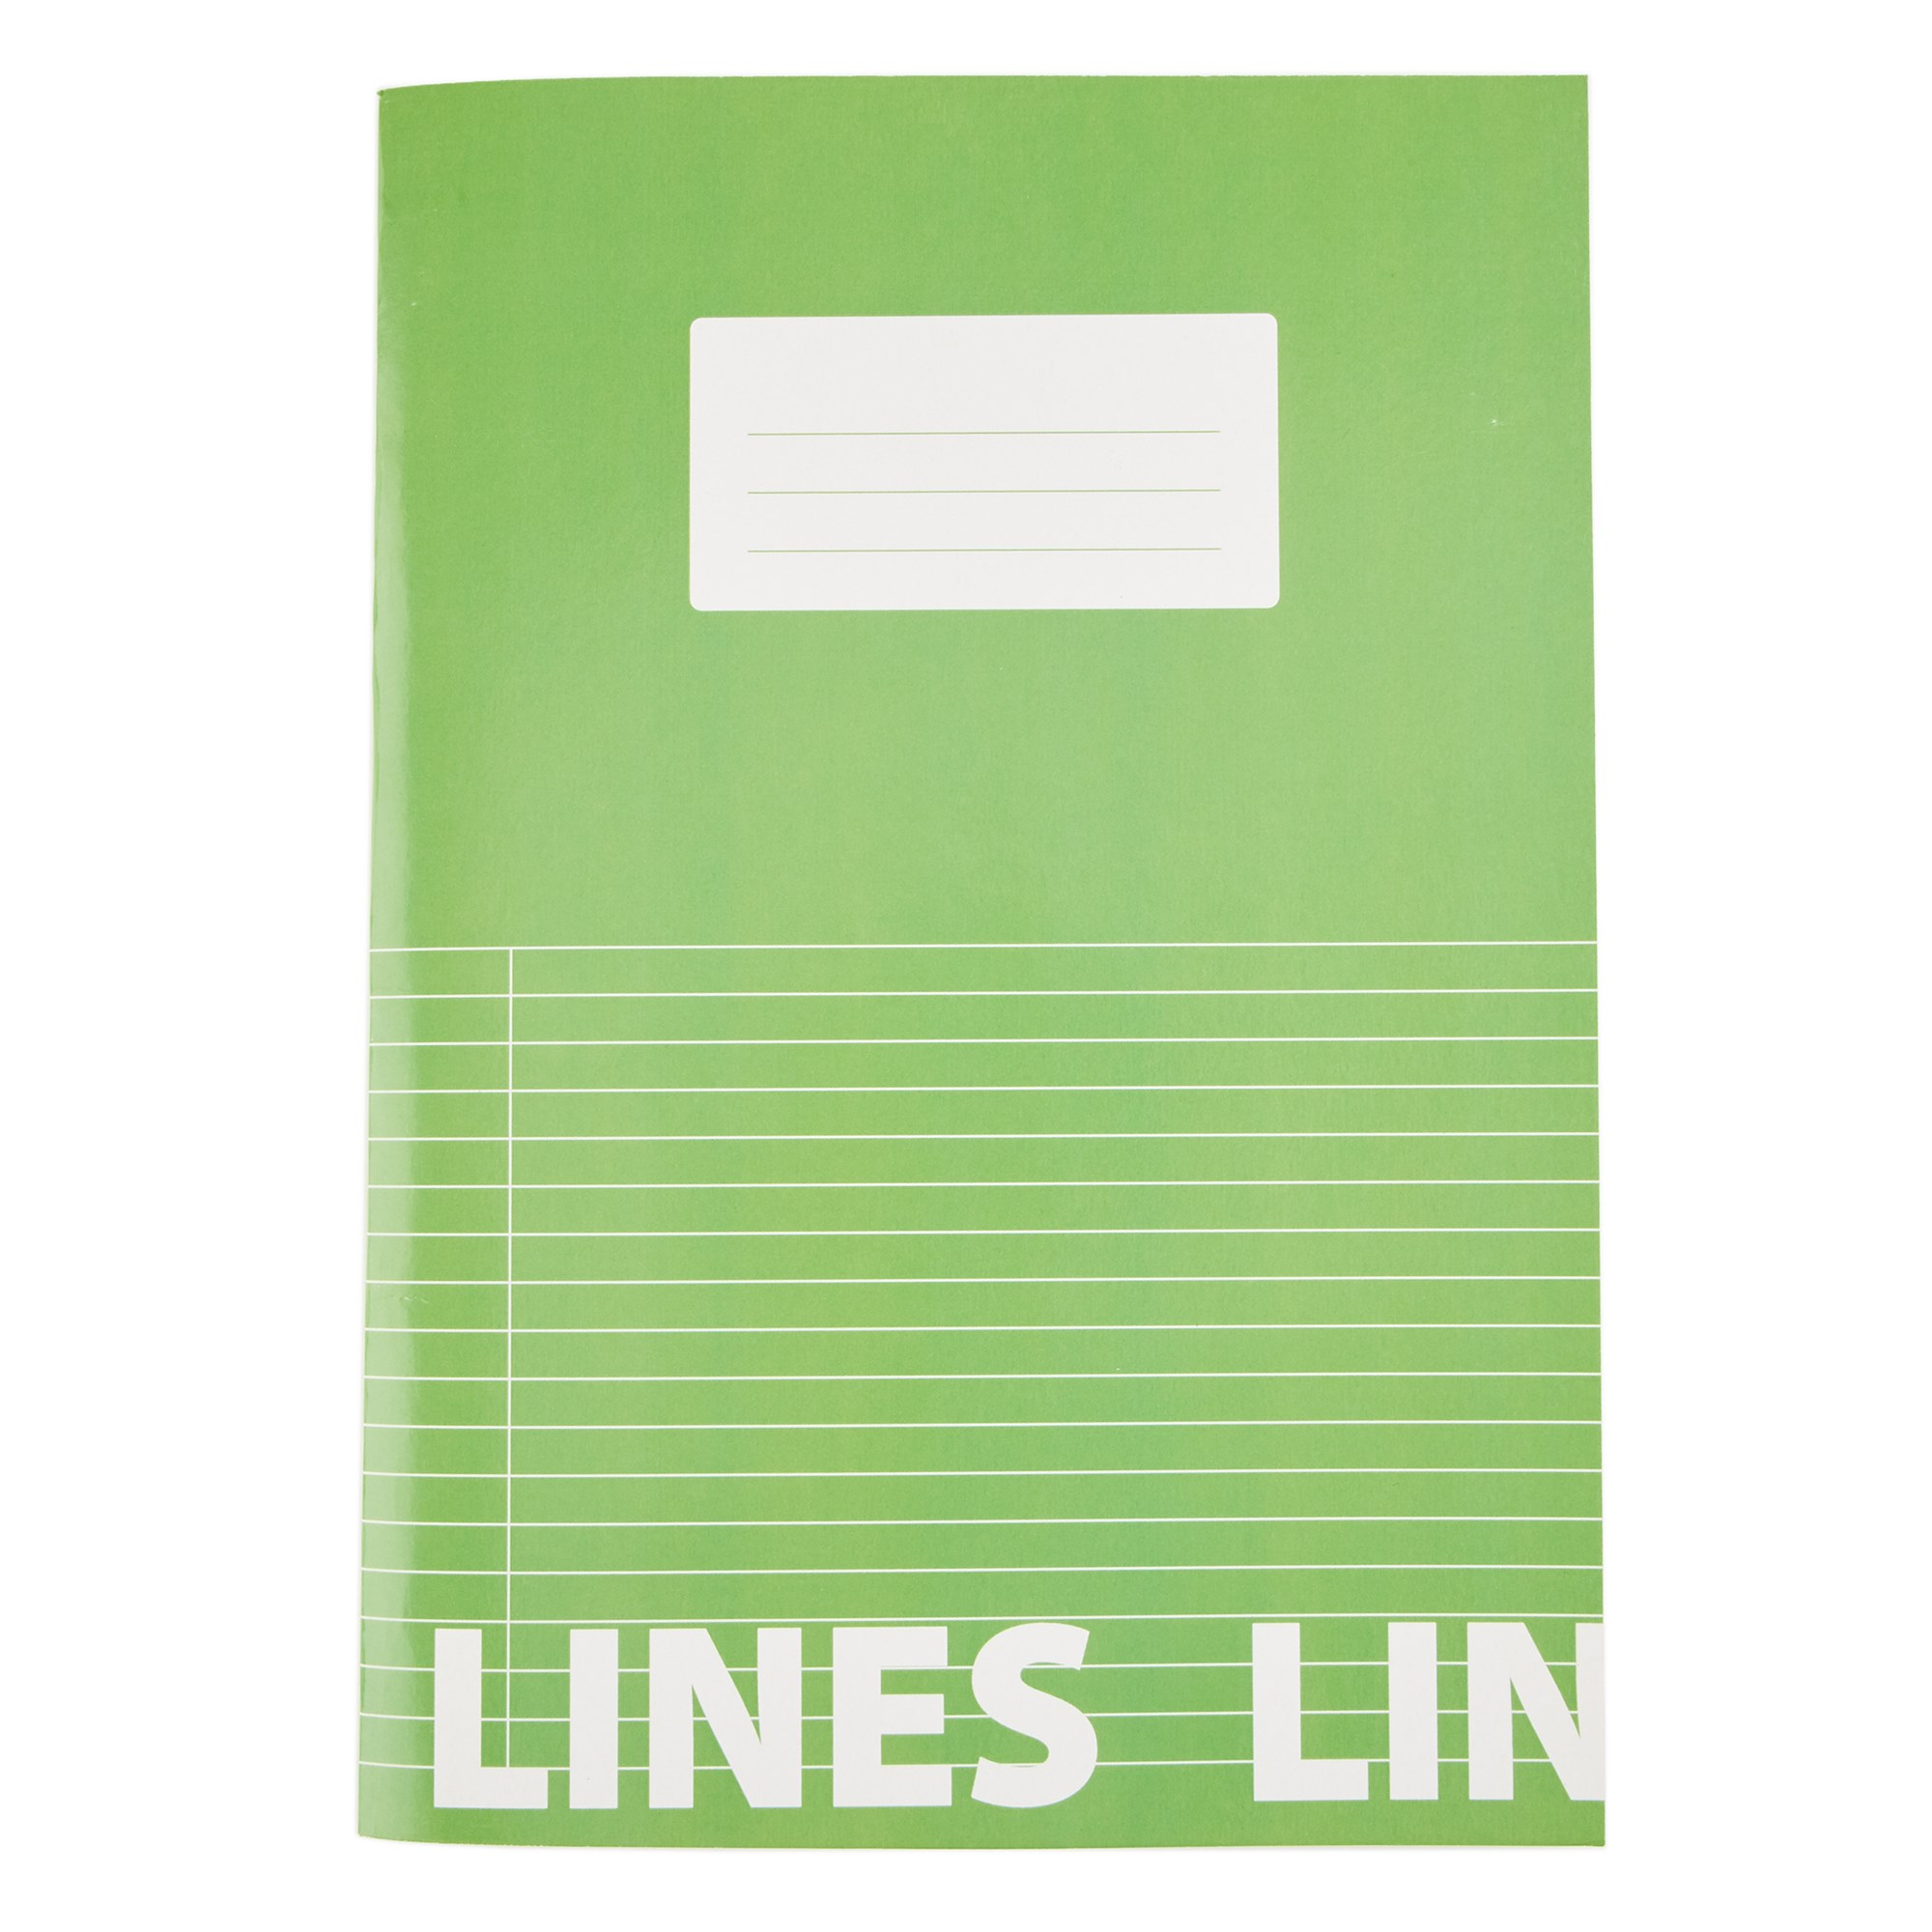 Classmates Green A4 Tough Cover Exercise Books 80-Page 8mm Ruled With Margin (Pack of 50)